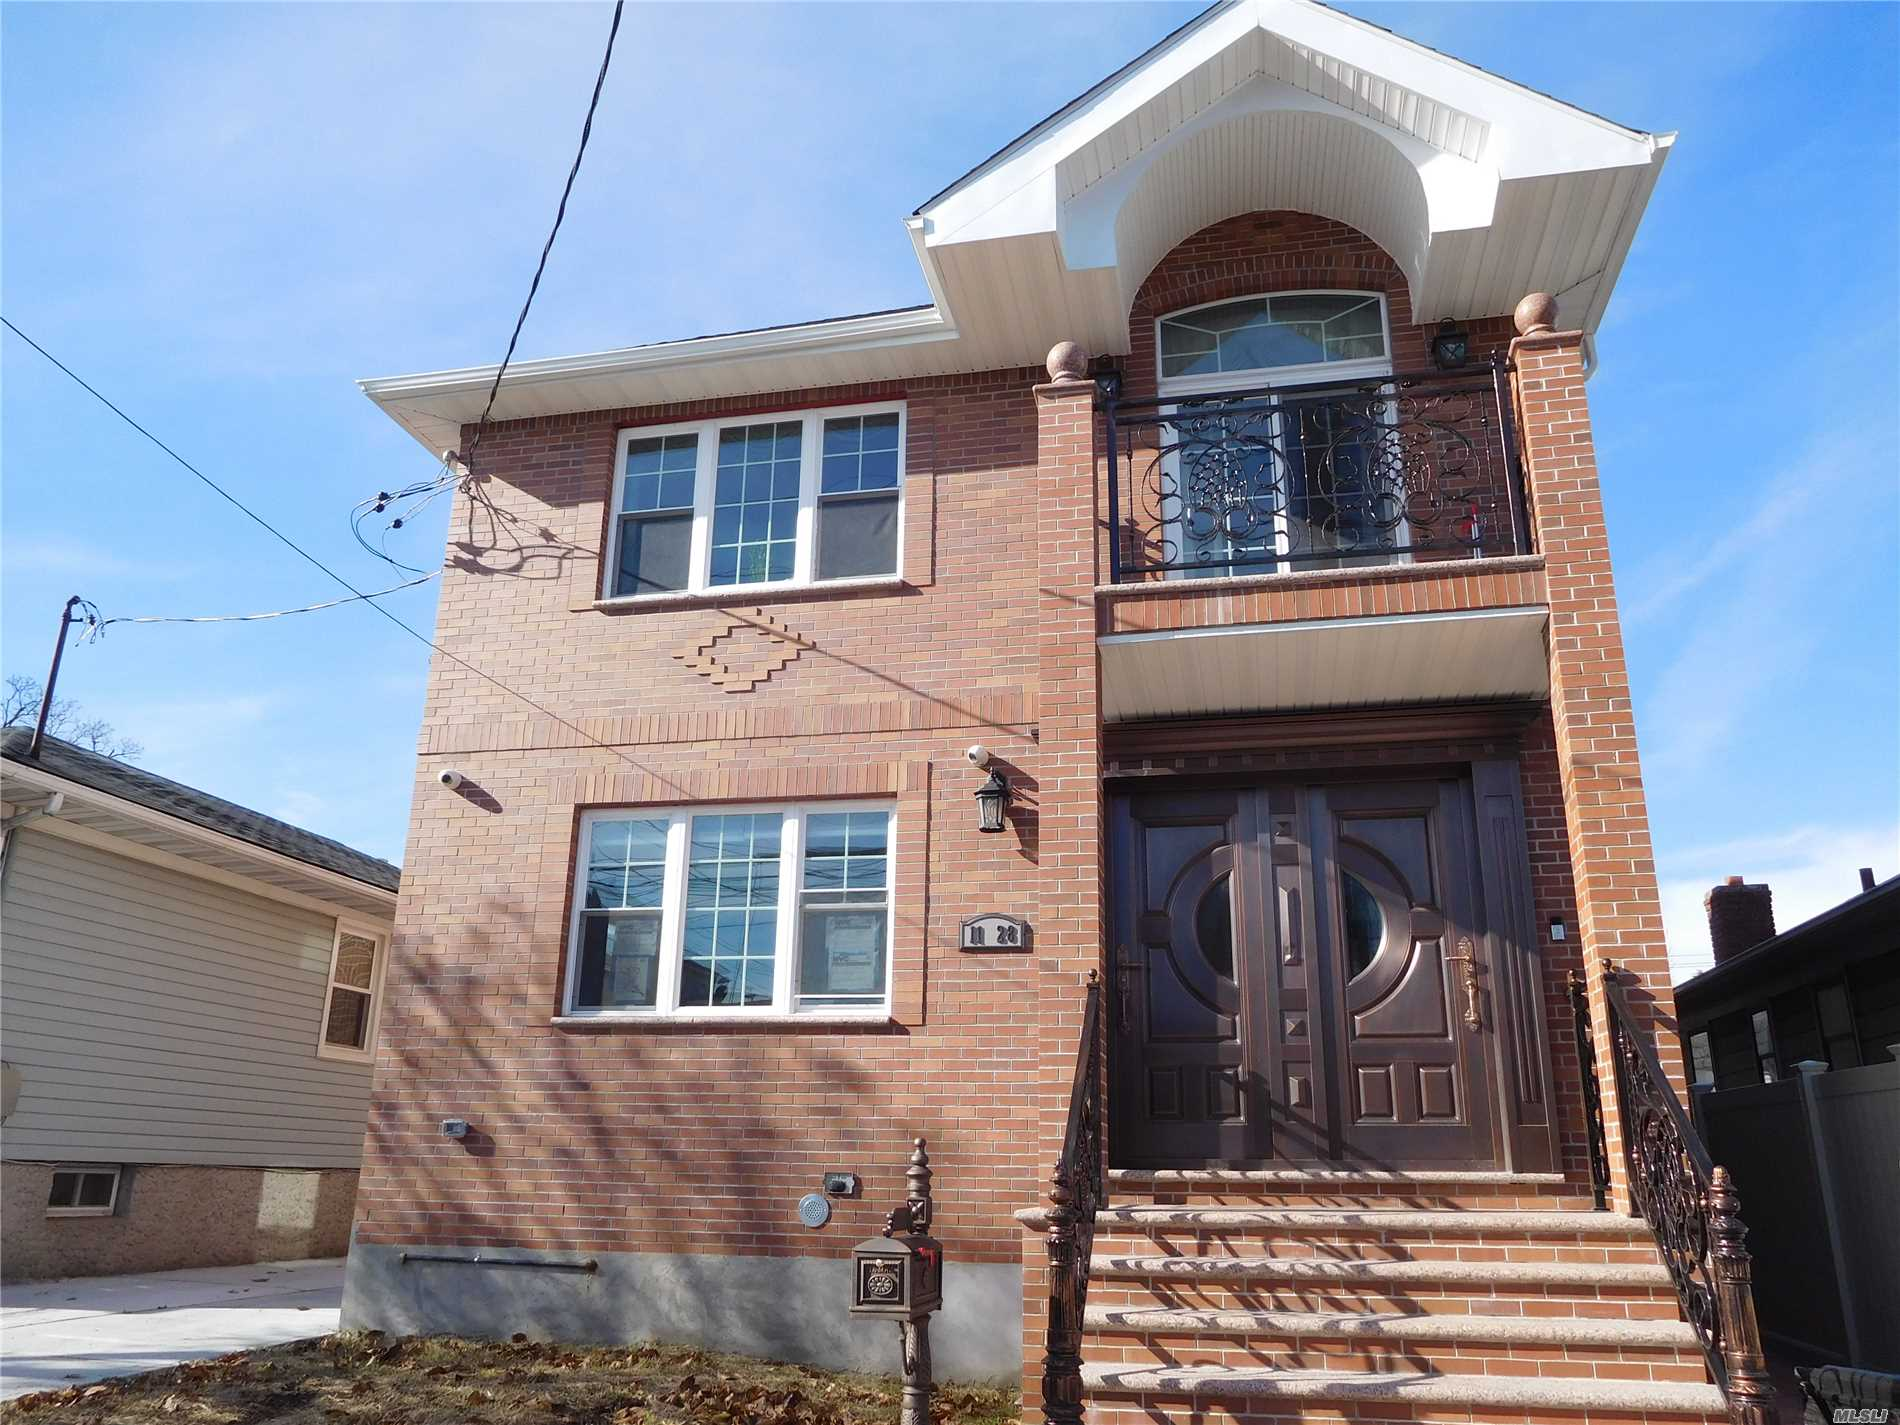 Spacious 3 Br 2 Bath Apartment At 1st Fl, In A Brandnew 2 Family House, Features Open Big Eat-In-Kitchen, Formal Dining Room, Huge Walk-In Closet With Wooden Closet Organizer. Easy Transportation With Q25 Bus (Stop At The Corner Of 127 Street And 11 Ave) To Main Street, Flushing.